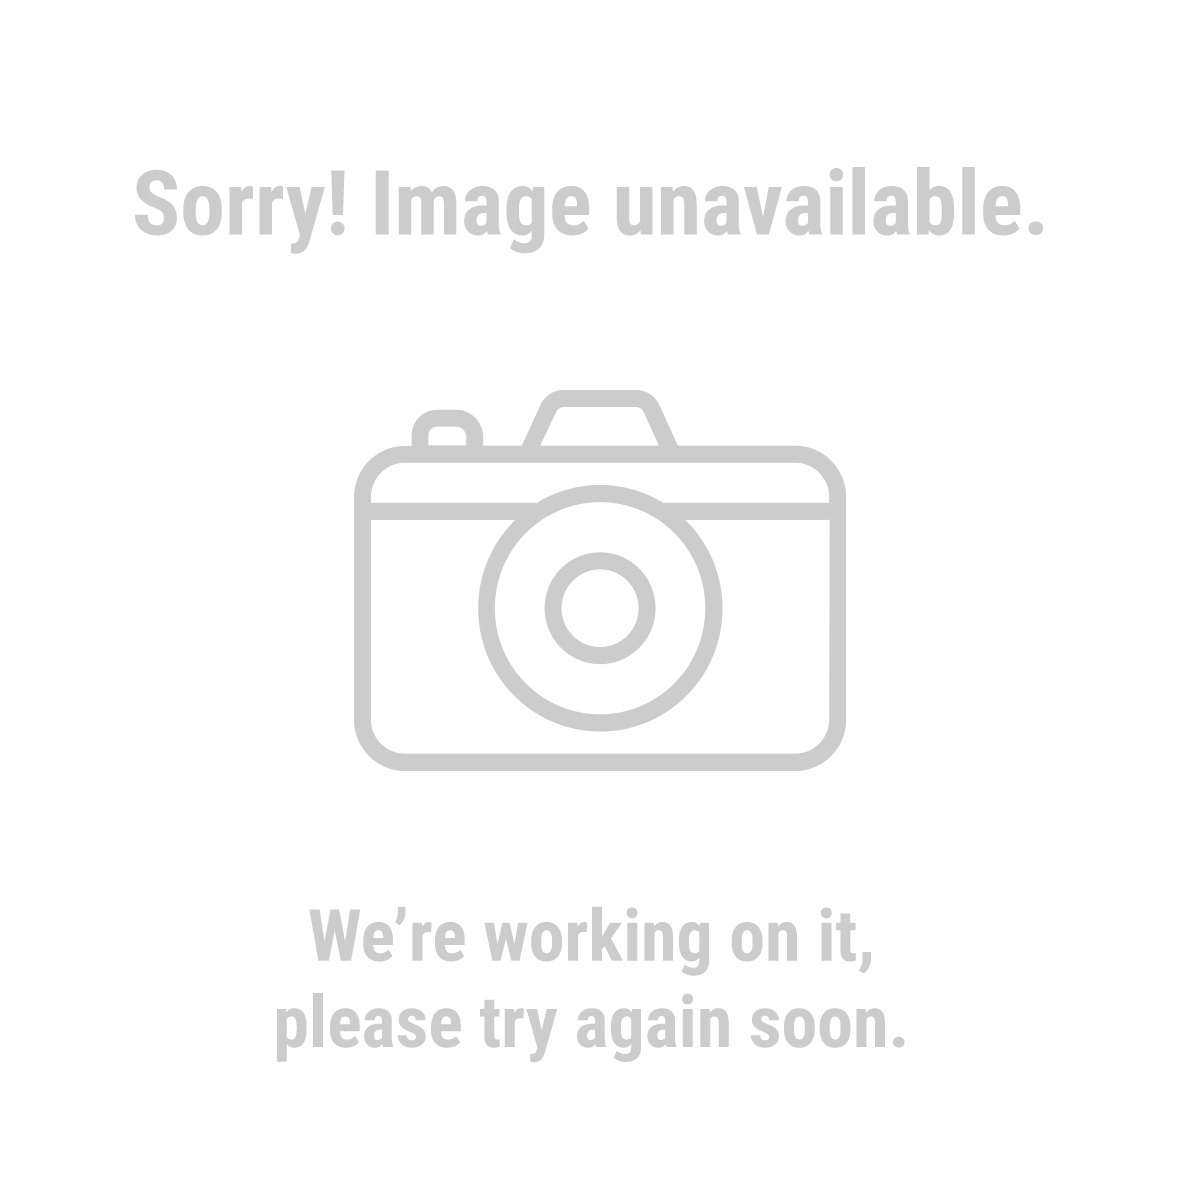 Haul-Master® 62660 750 lb. Capacity Heavy Duty Folding Cargo Carrier